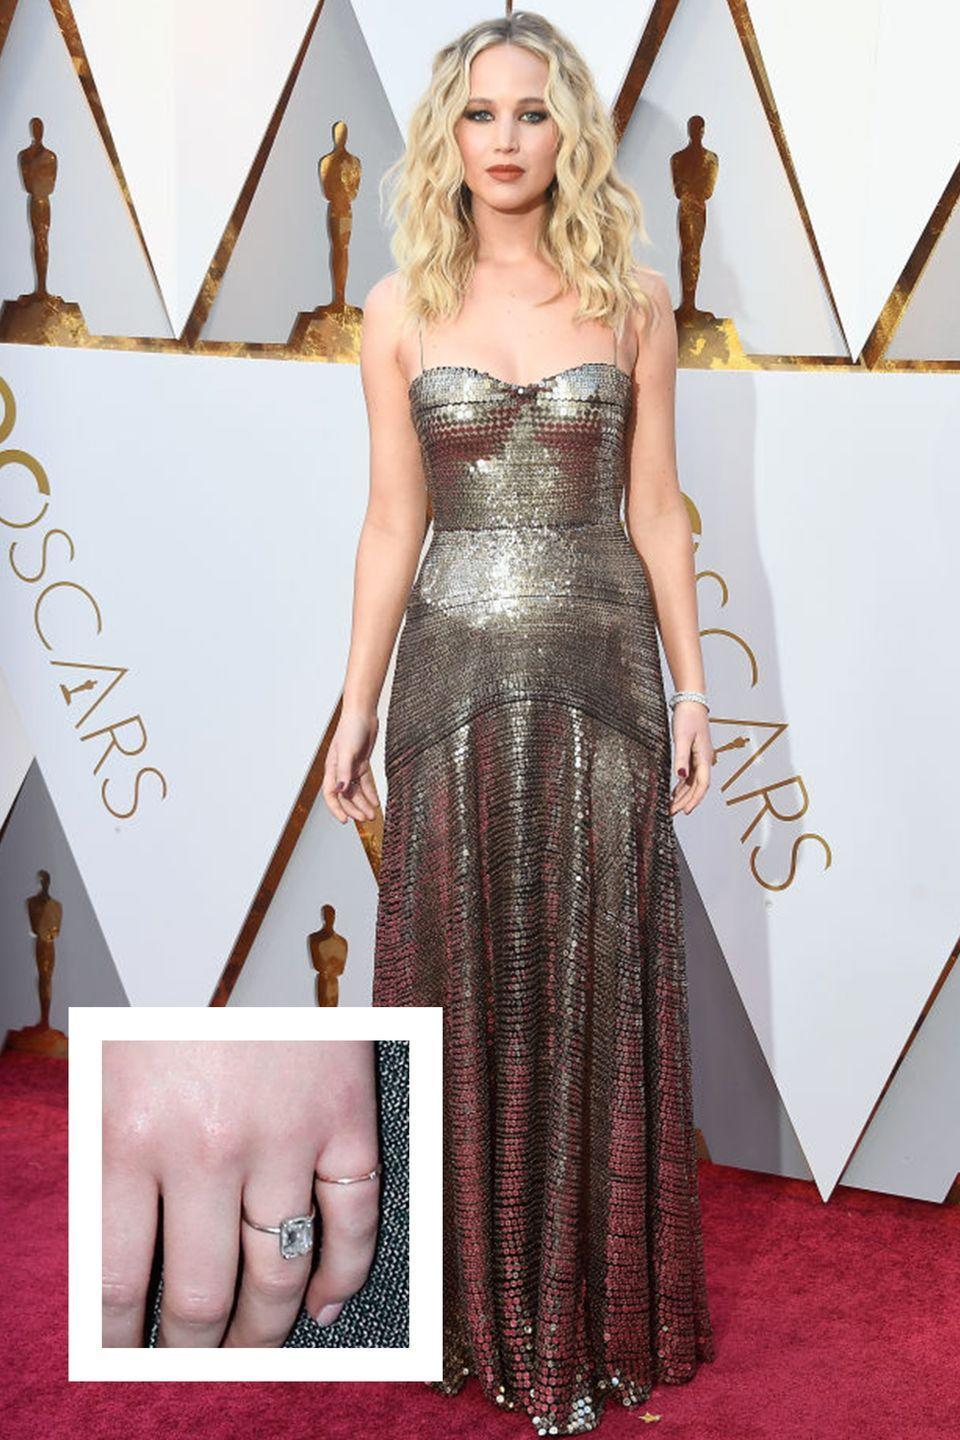 """<p>The actress got engaged to<a href=""""https://www.townandcountrymag.com/the-scene/weddings/a26190886/who-is-cooke-maroney-jennifer-lawrence/"""" rel=""""nofollow noopener"""" target=""""_blank"""" data-ylk=""""slk:art dealer Cooke Maroney"""" class=""""link rapid-noclick-resp""""> art dealer Cooke Maroney</a> in February 2019. A few weeks later, Lawrence debuted <a href=""""https://www.townandcountrymag.com/style/jewelry-and-watches/a26535238/jennifer-lawrence-cooke-maroney-engagement-ring-worth-cost-details/"""" rel=""""nofollow noopener"""" target=""""_blank"""" data-ylk=""""slk:her massive engagement ring"""" class=""""link rapid-noclick-resp"""">her massive engagement ring</a>, which appears to feature a four to five carat elongated cushion or emerald cut diamond center stone in a white gold or platinum solitaire setting. The ring is estimated to cost between $60,000 to $100,000, approximately.</p>"""